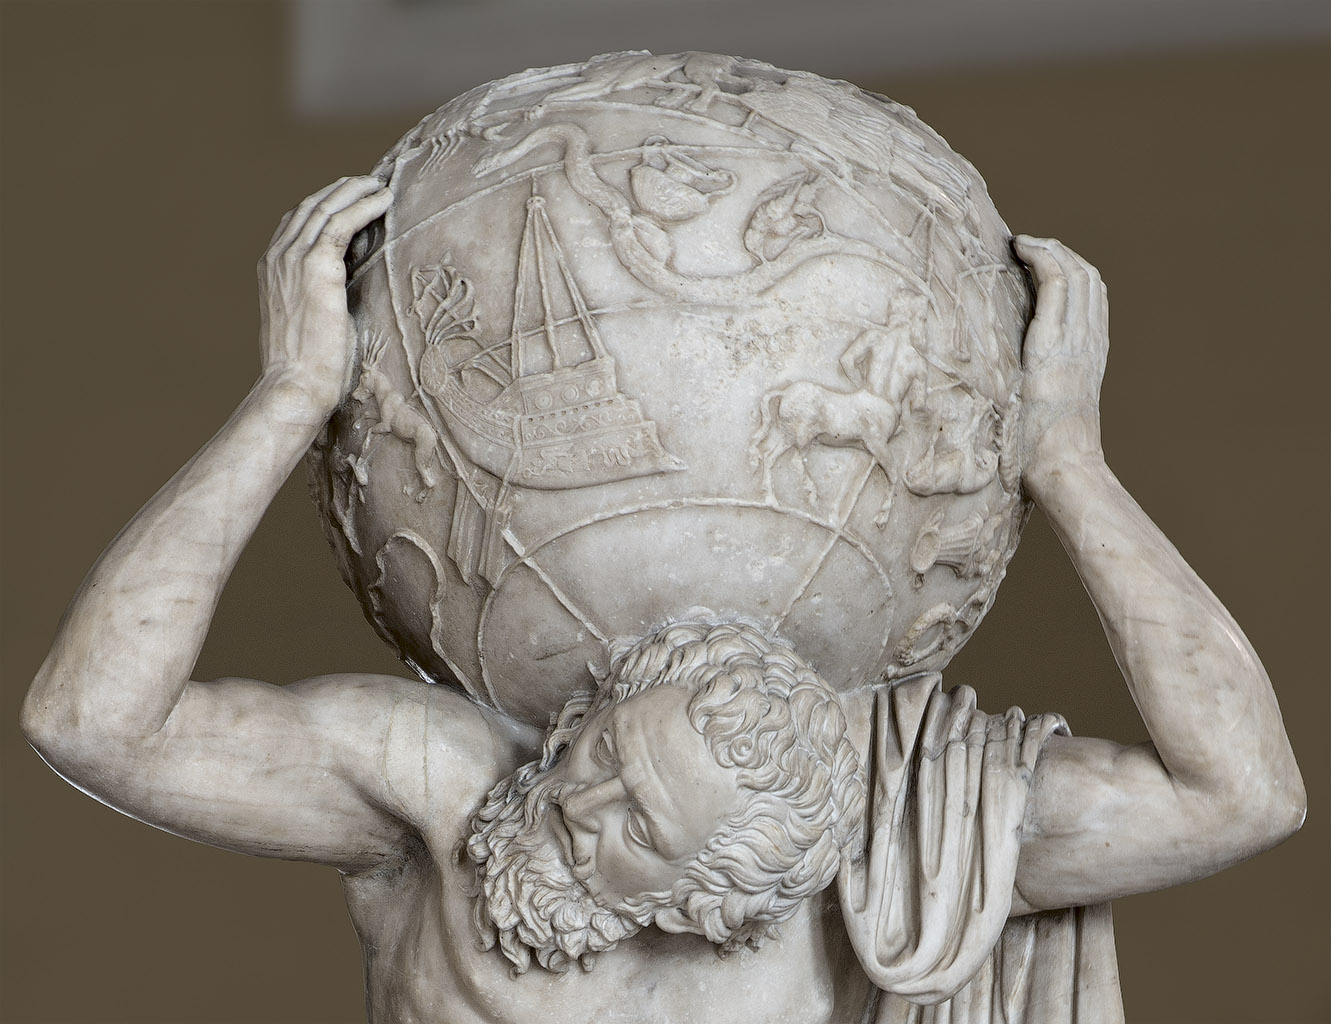 http://ancientrome.ru/art/artwork/sculp/mythology/gr/atlas/atl005.jpg